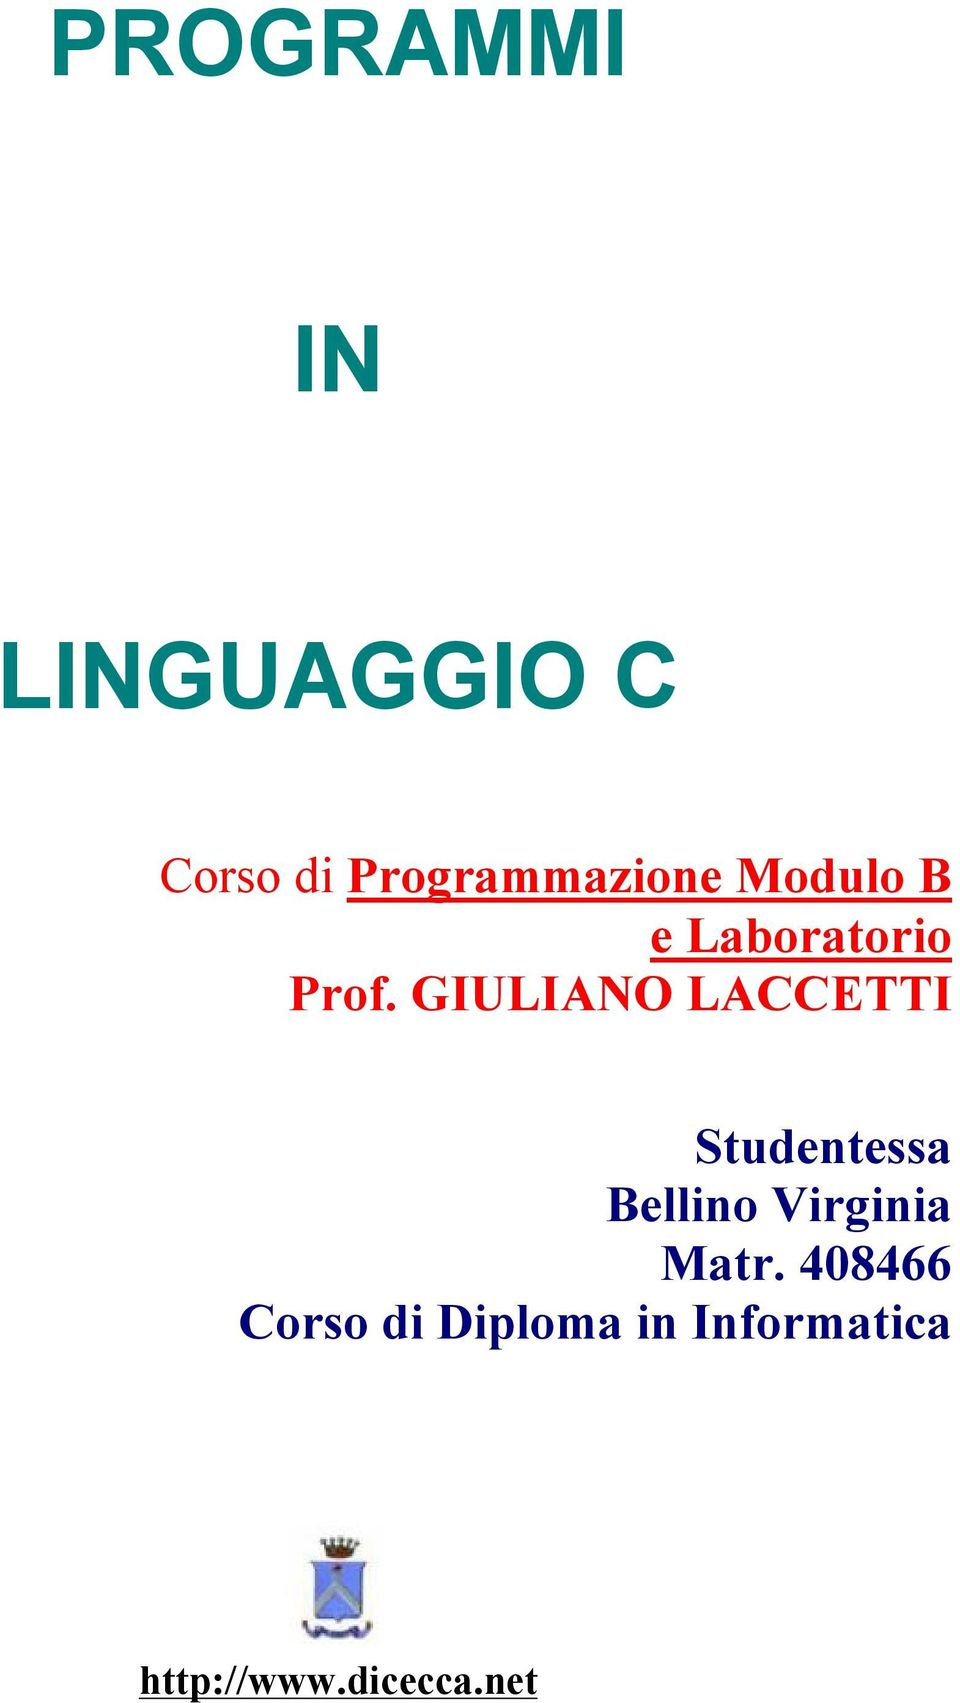 GIULIANO LACCETTI Studentessa Bellino Virginia